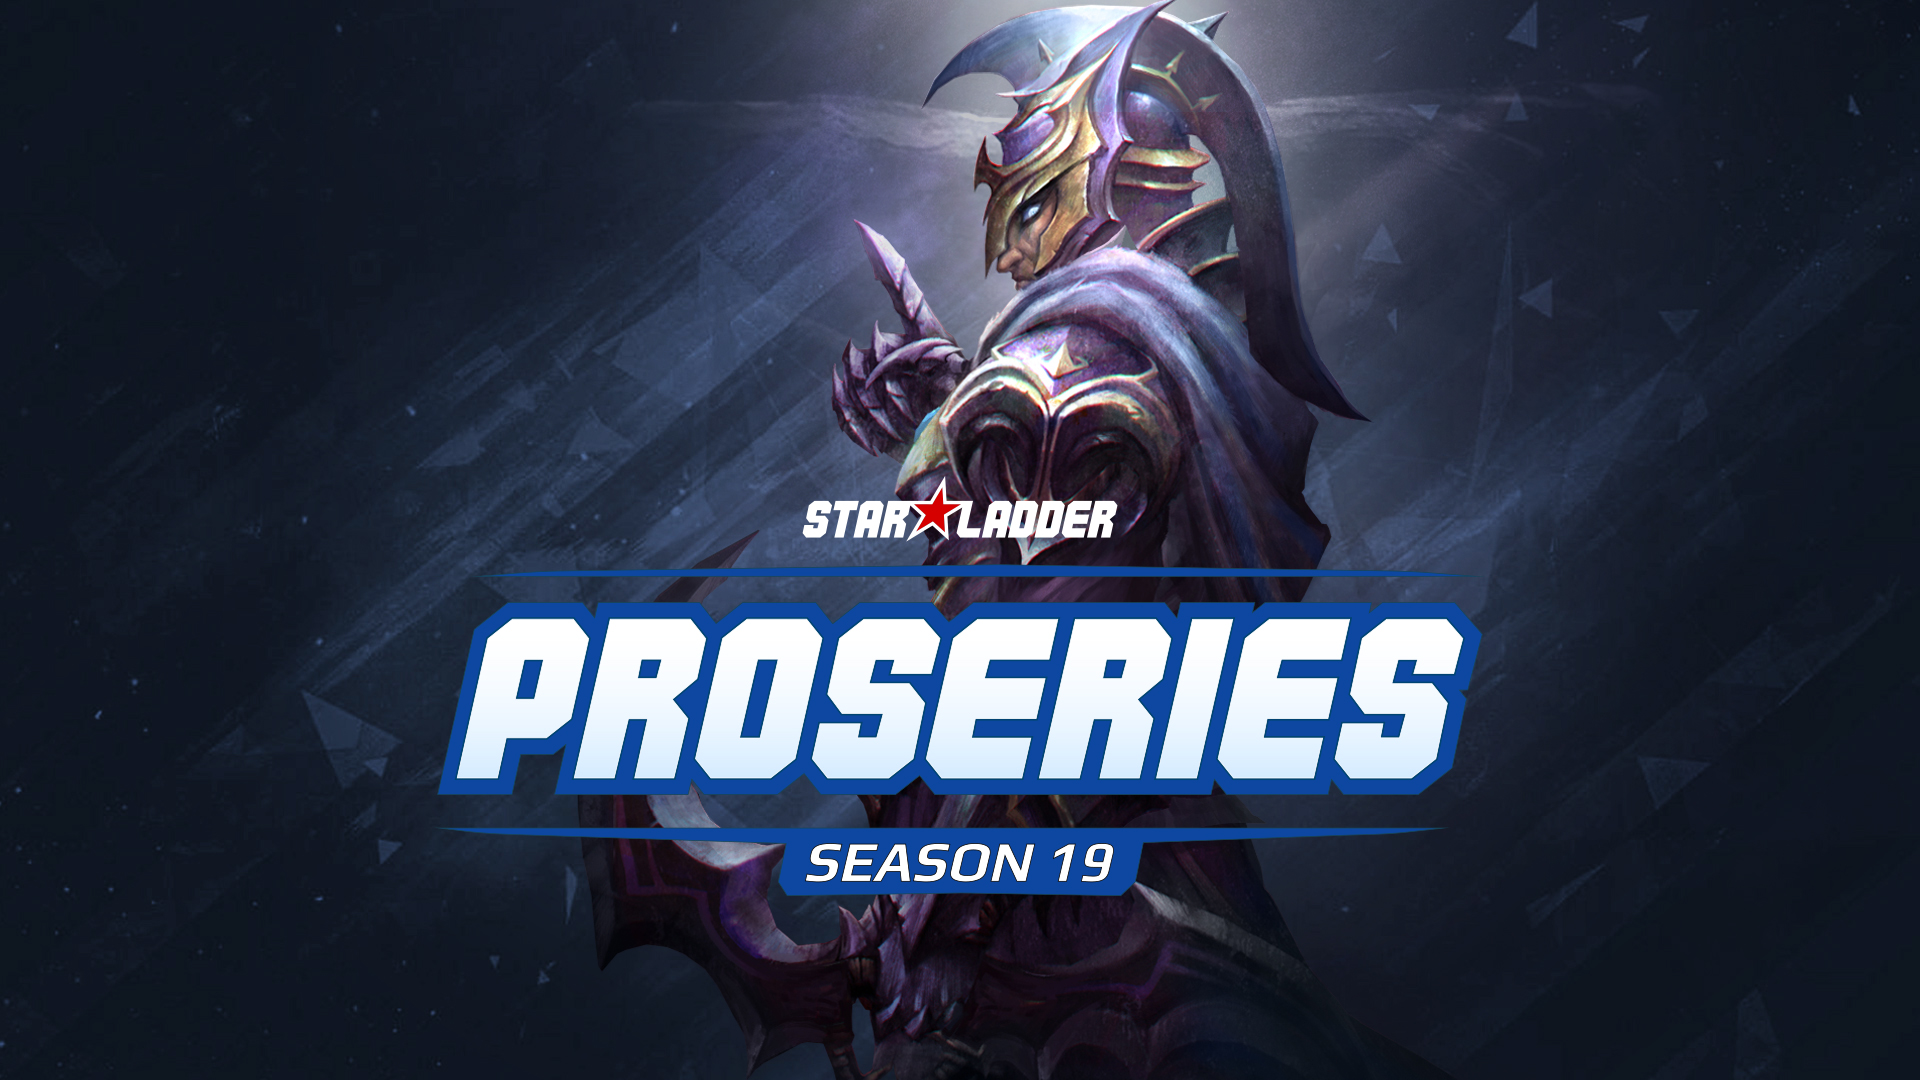 StarLadder ProSeries season 19